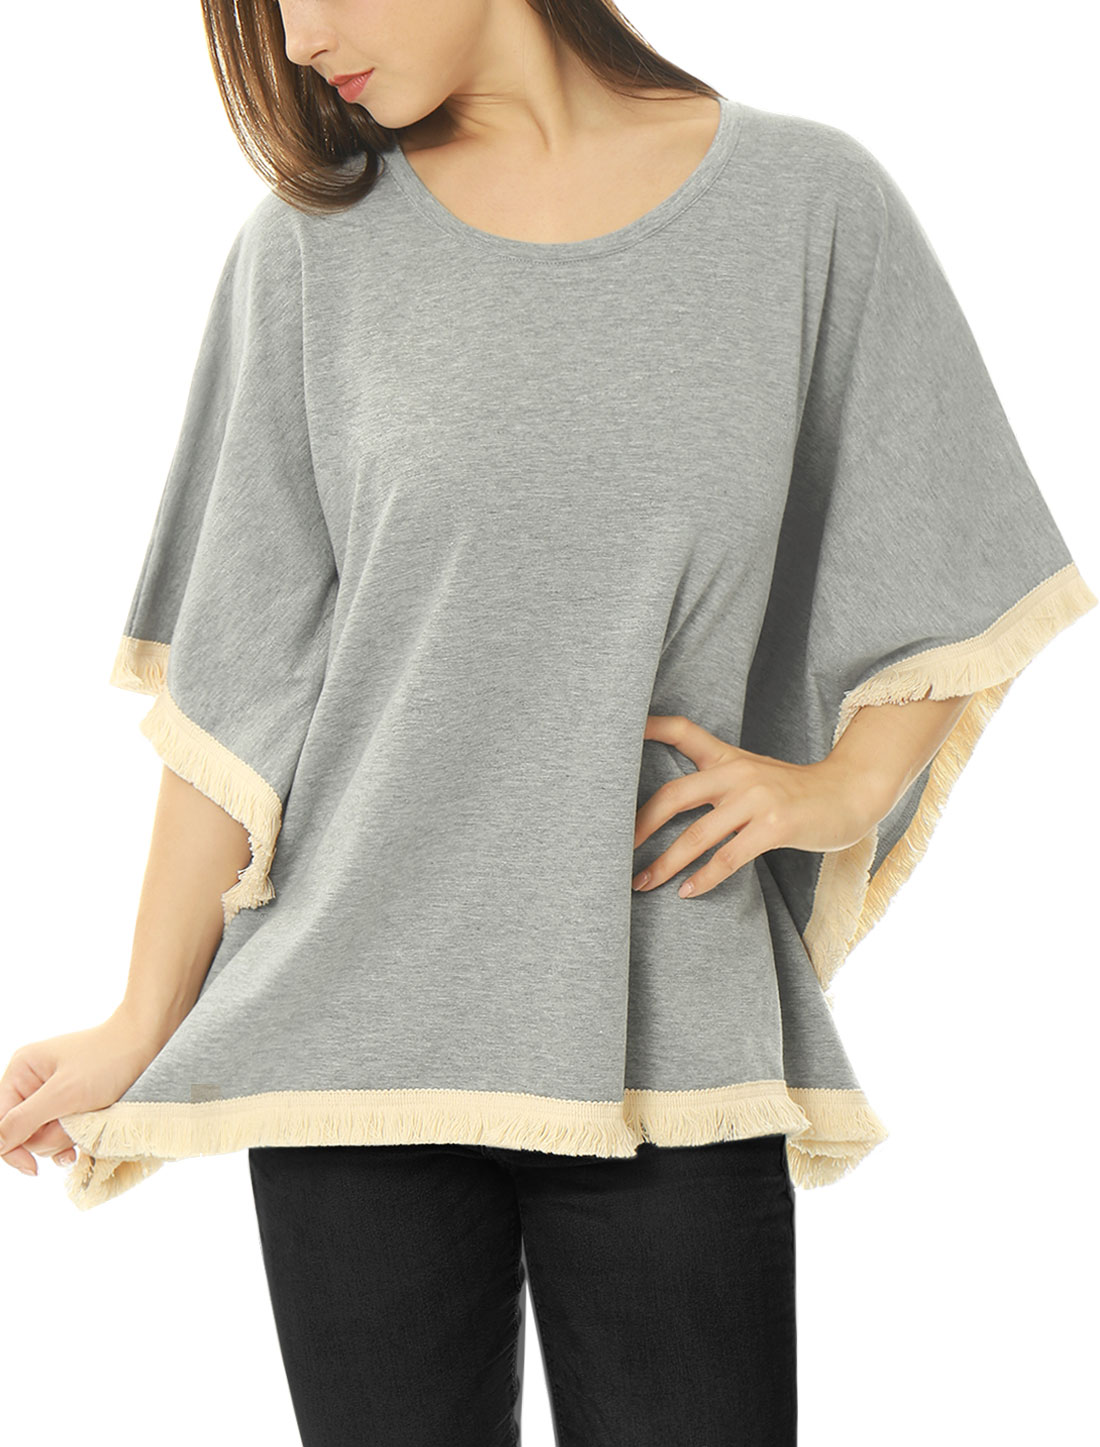 Women Batwing Sleeves Contrast Fringe Oversized Poncho Gray L